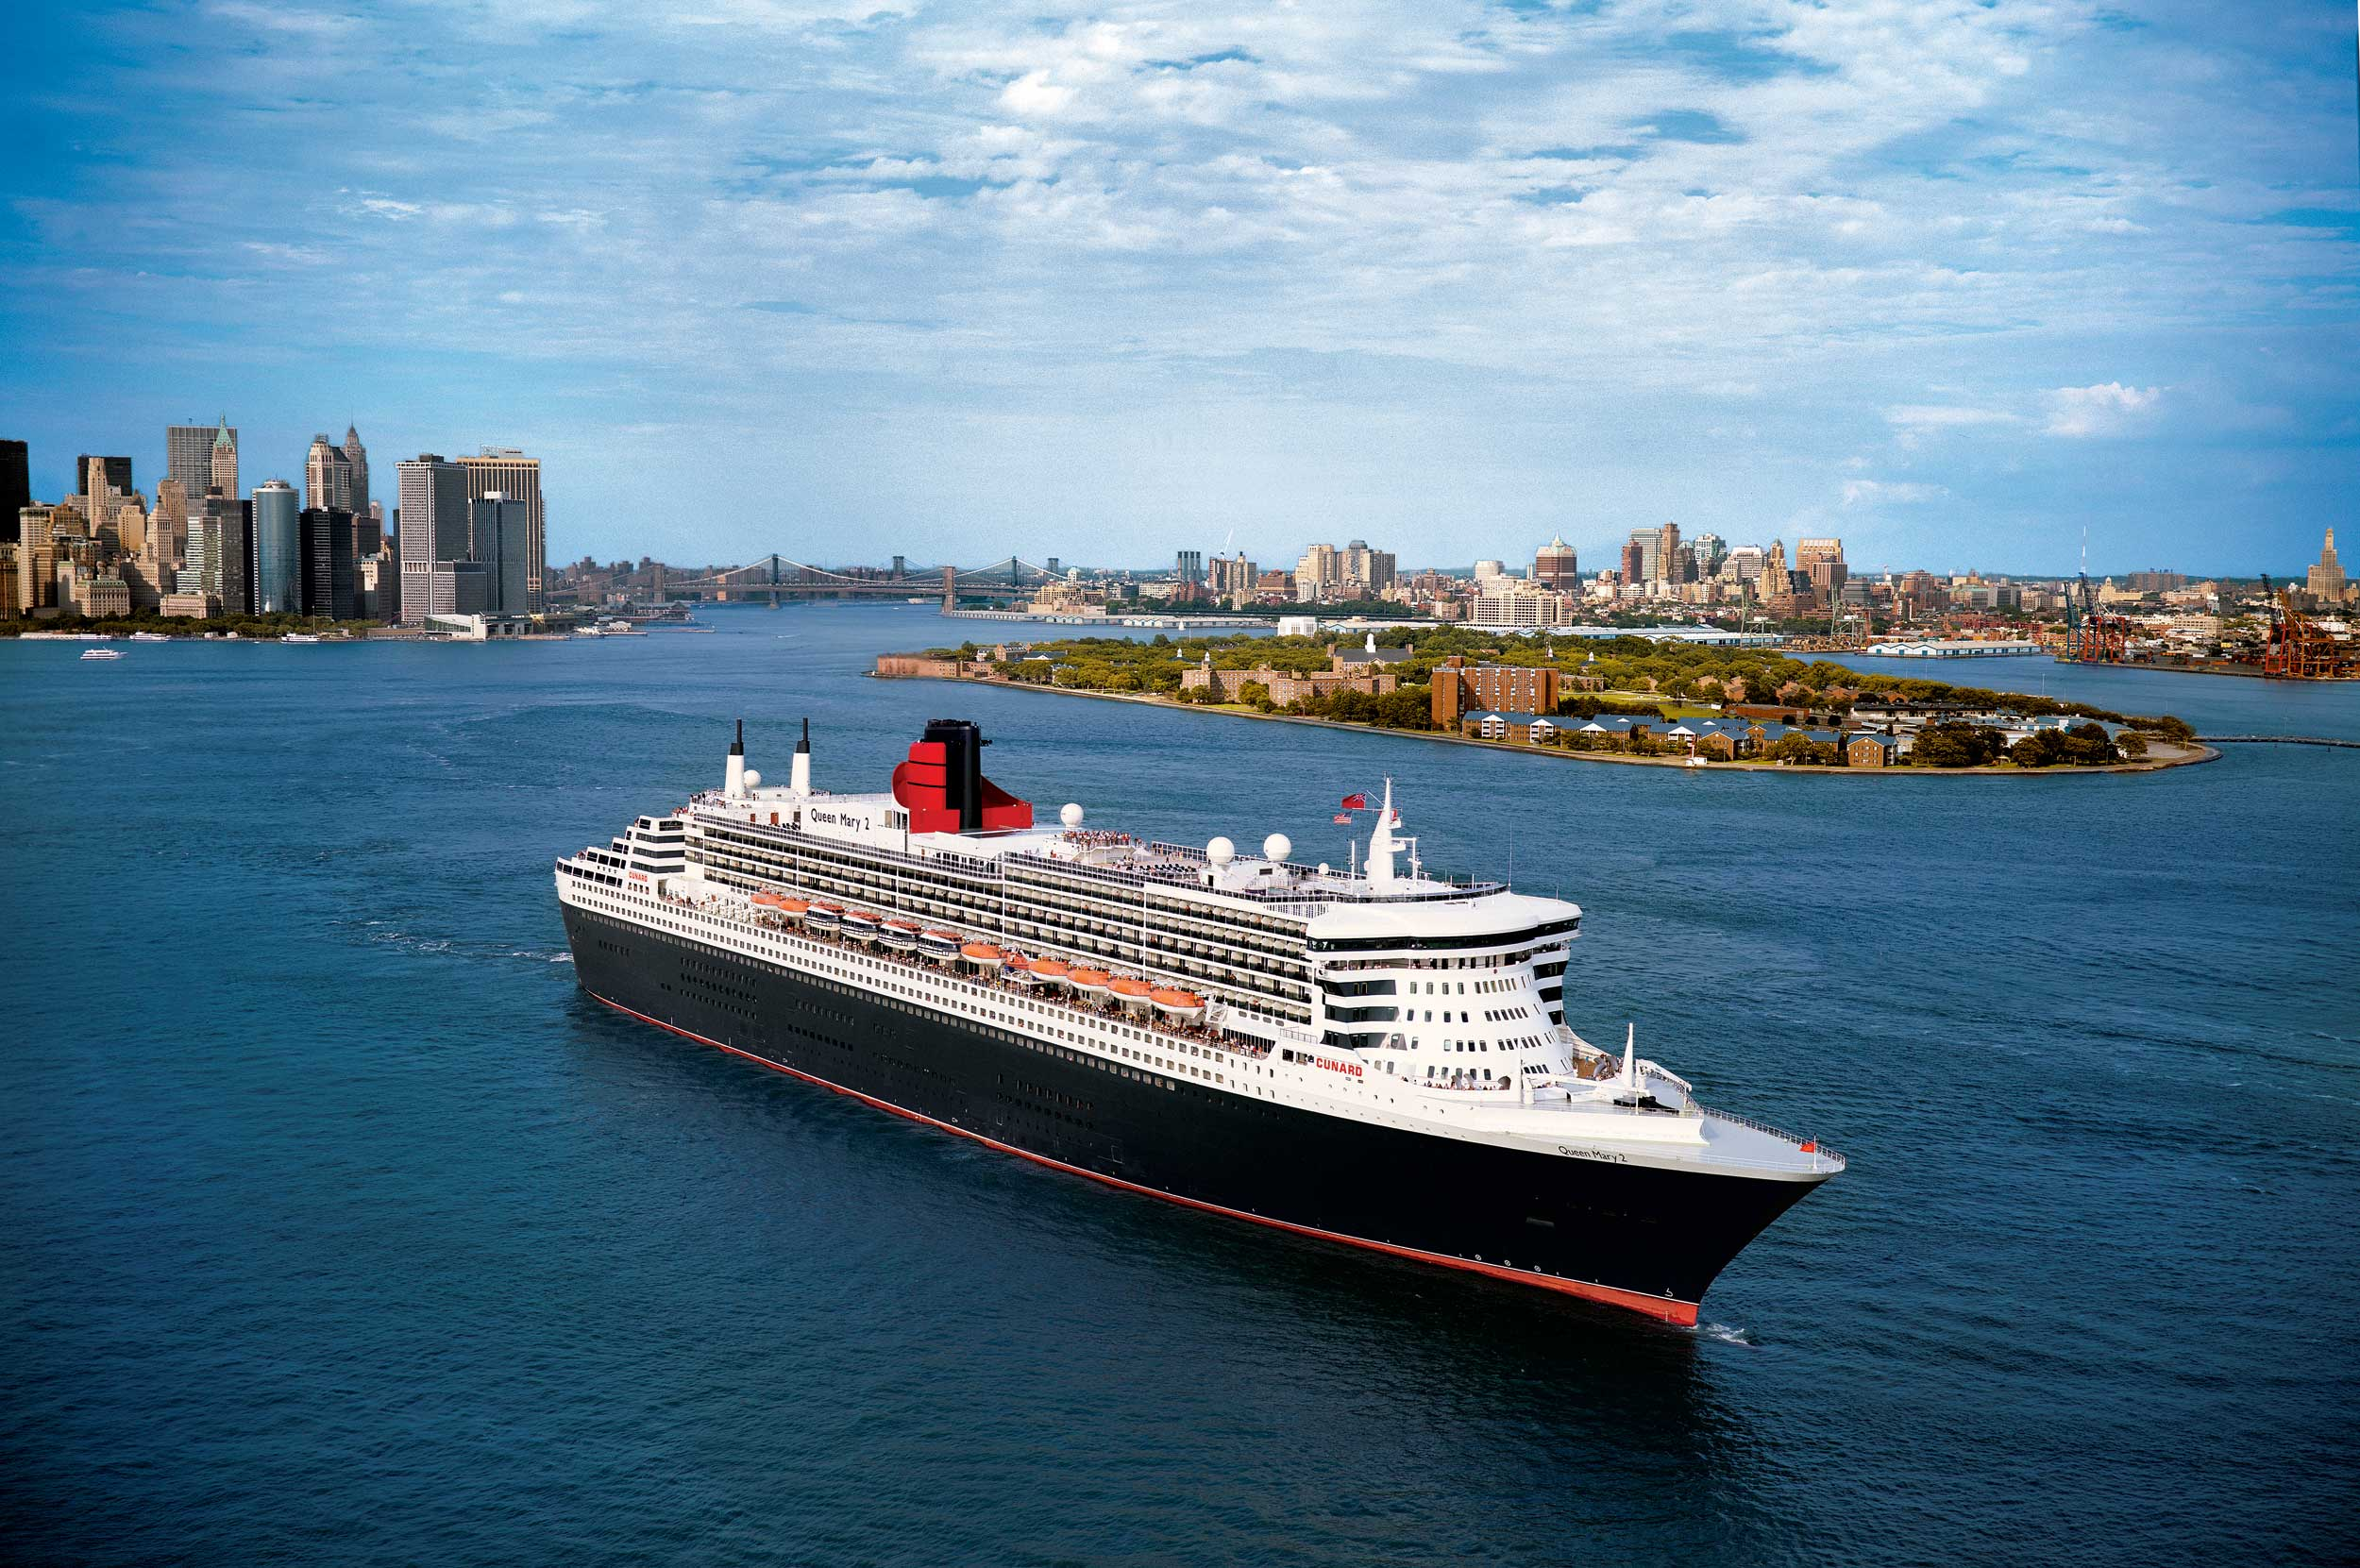 Crossing the North Atlantic in Style on the Queen Mary 2 ...